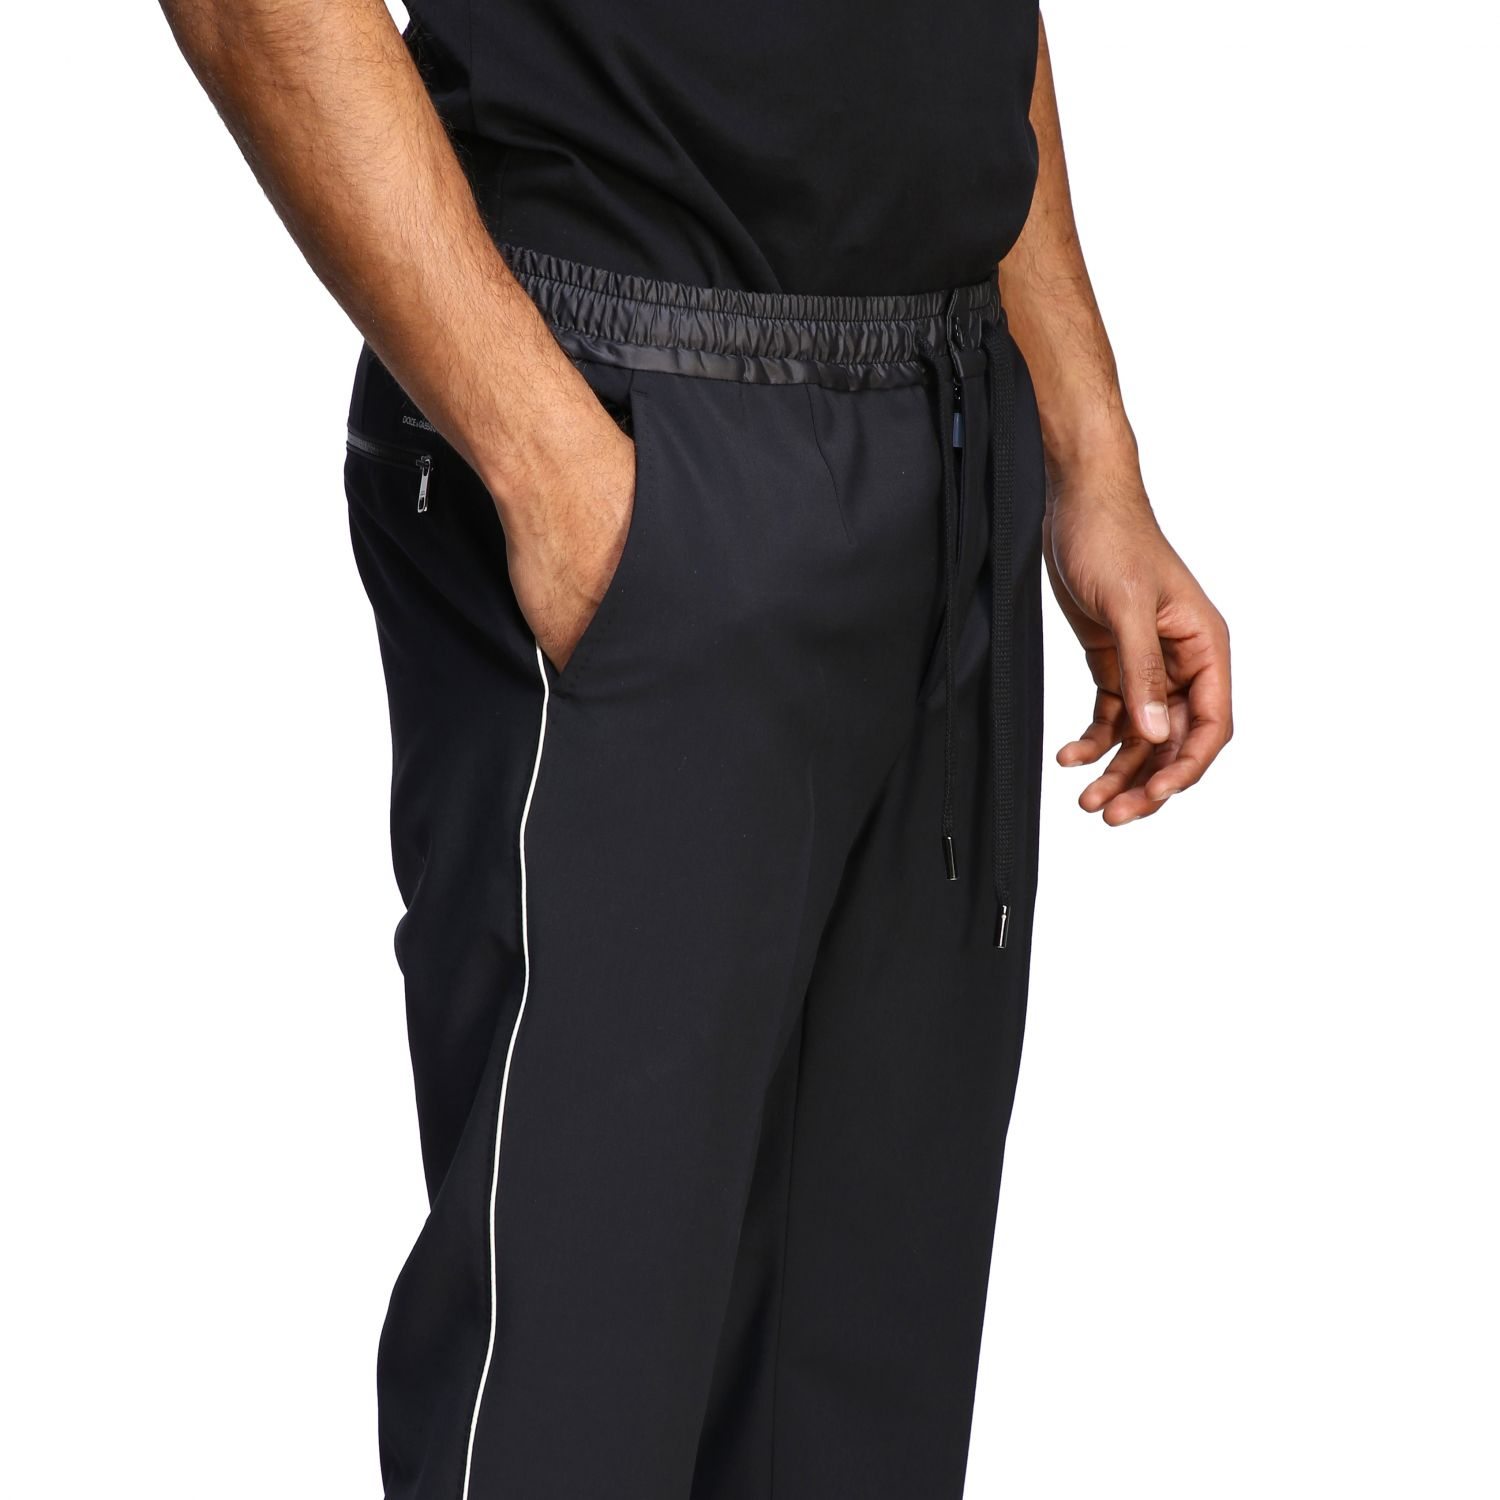 Pants Dolce & Gabbana: Dolce & Gabbana jogging style trousers with colored edges black 4